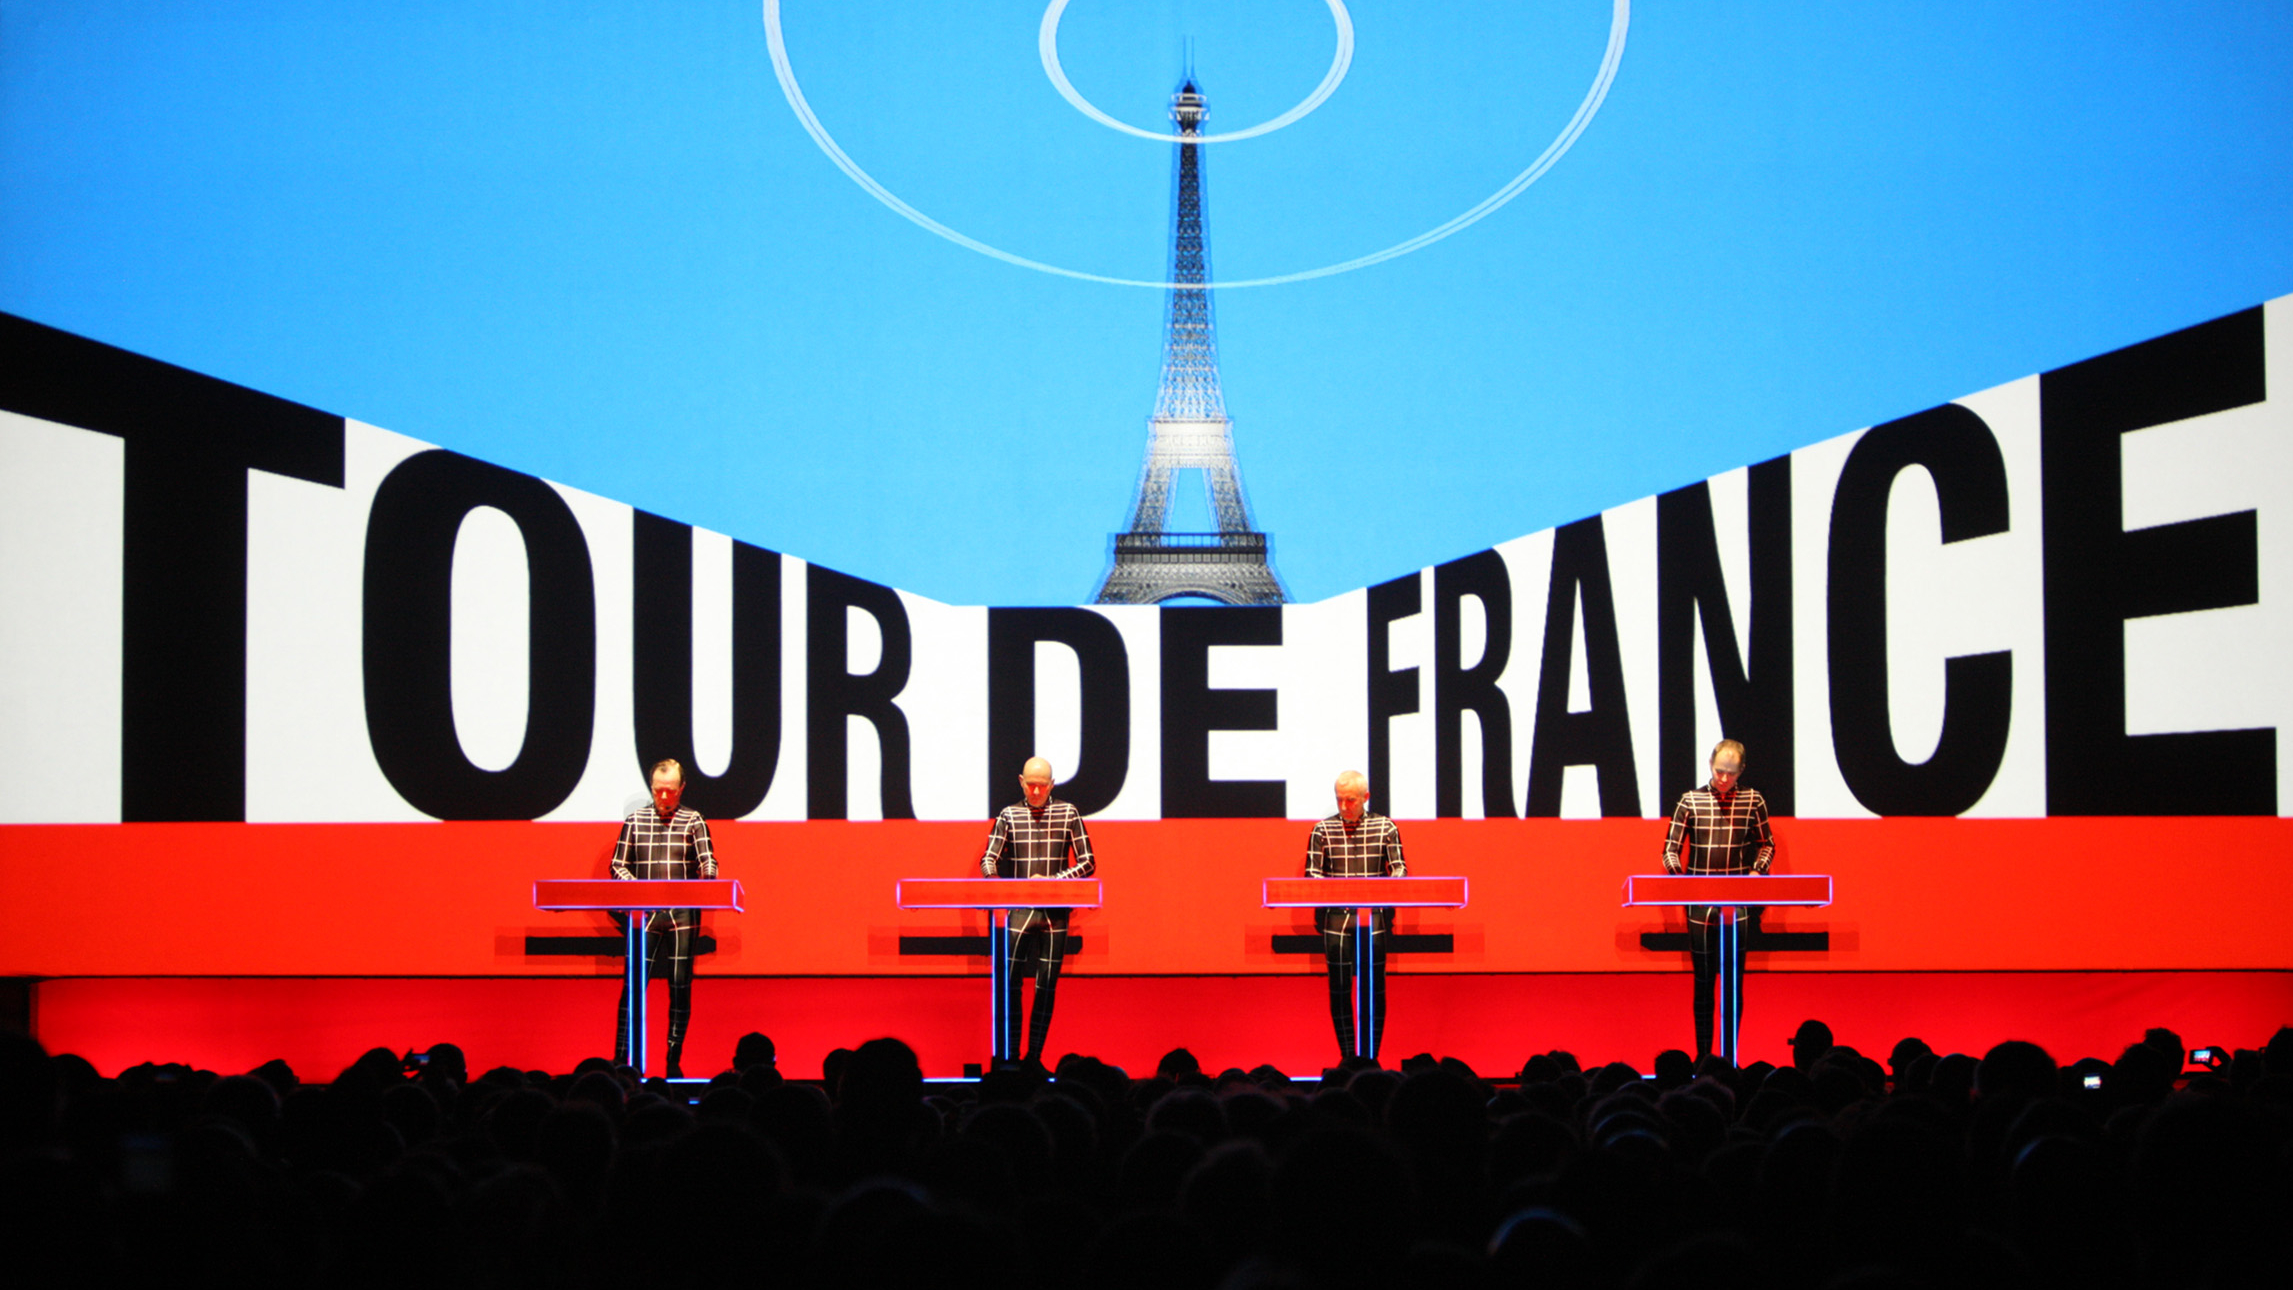 KRAFTWERK 3-D Open Air Konzert Zum Start Der Tour De France In Düsseldorf,(c)PHOTO + WORLDWIDE 2015 © By PETER BOETTCHER - Www.PETERBOETTCHER.de - ALL PHOTOGRAPHS ARE COPYRIGHTED AND MAY NOT BE REPRODUCED IN ANY FORM, STORED, OR MANIPULATED WITHOUT PRIOR WRITTEN PERMISSION - ONLY FOR ONE TIME PRESS RELEASE